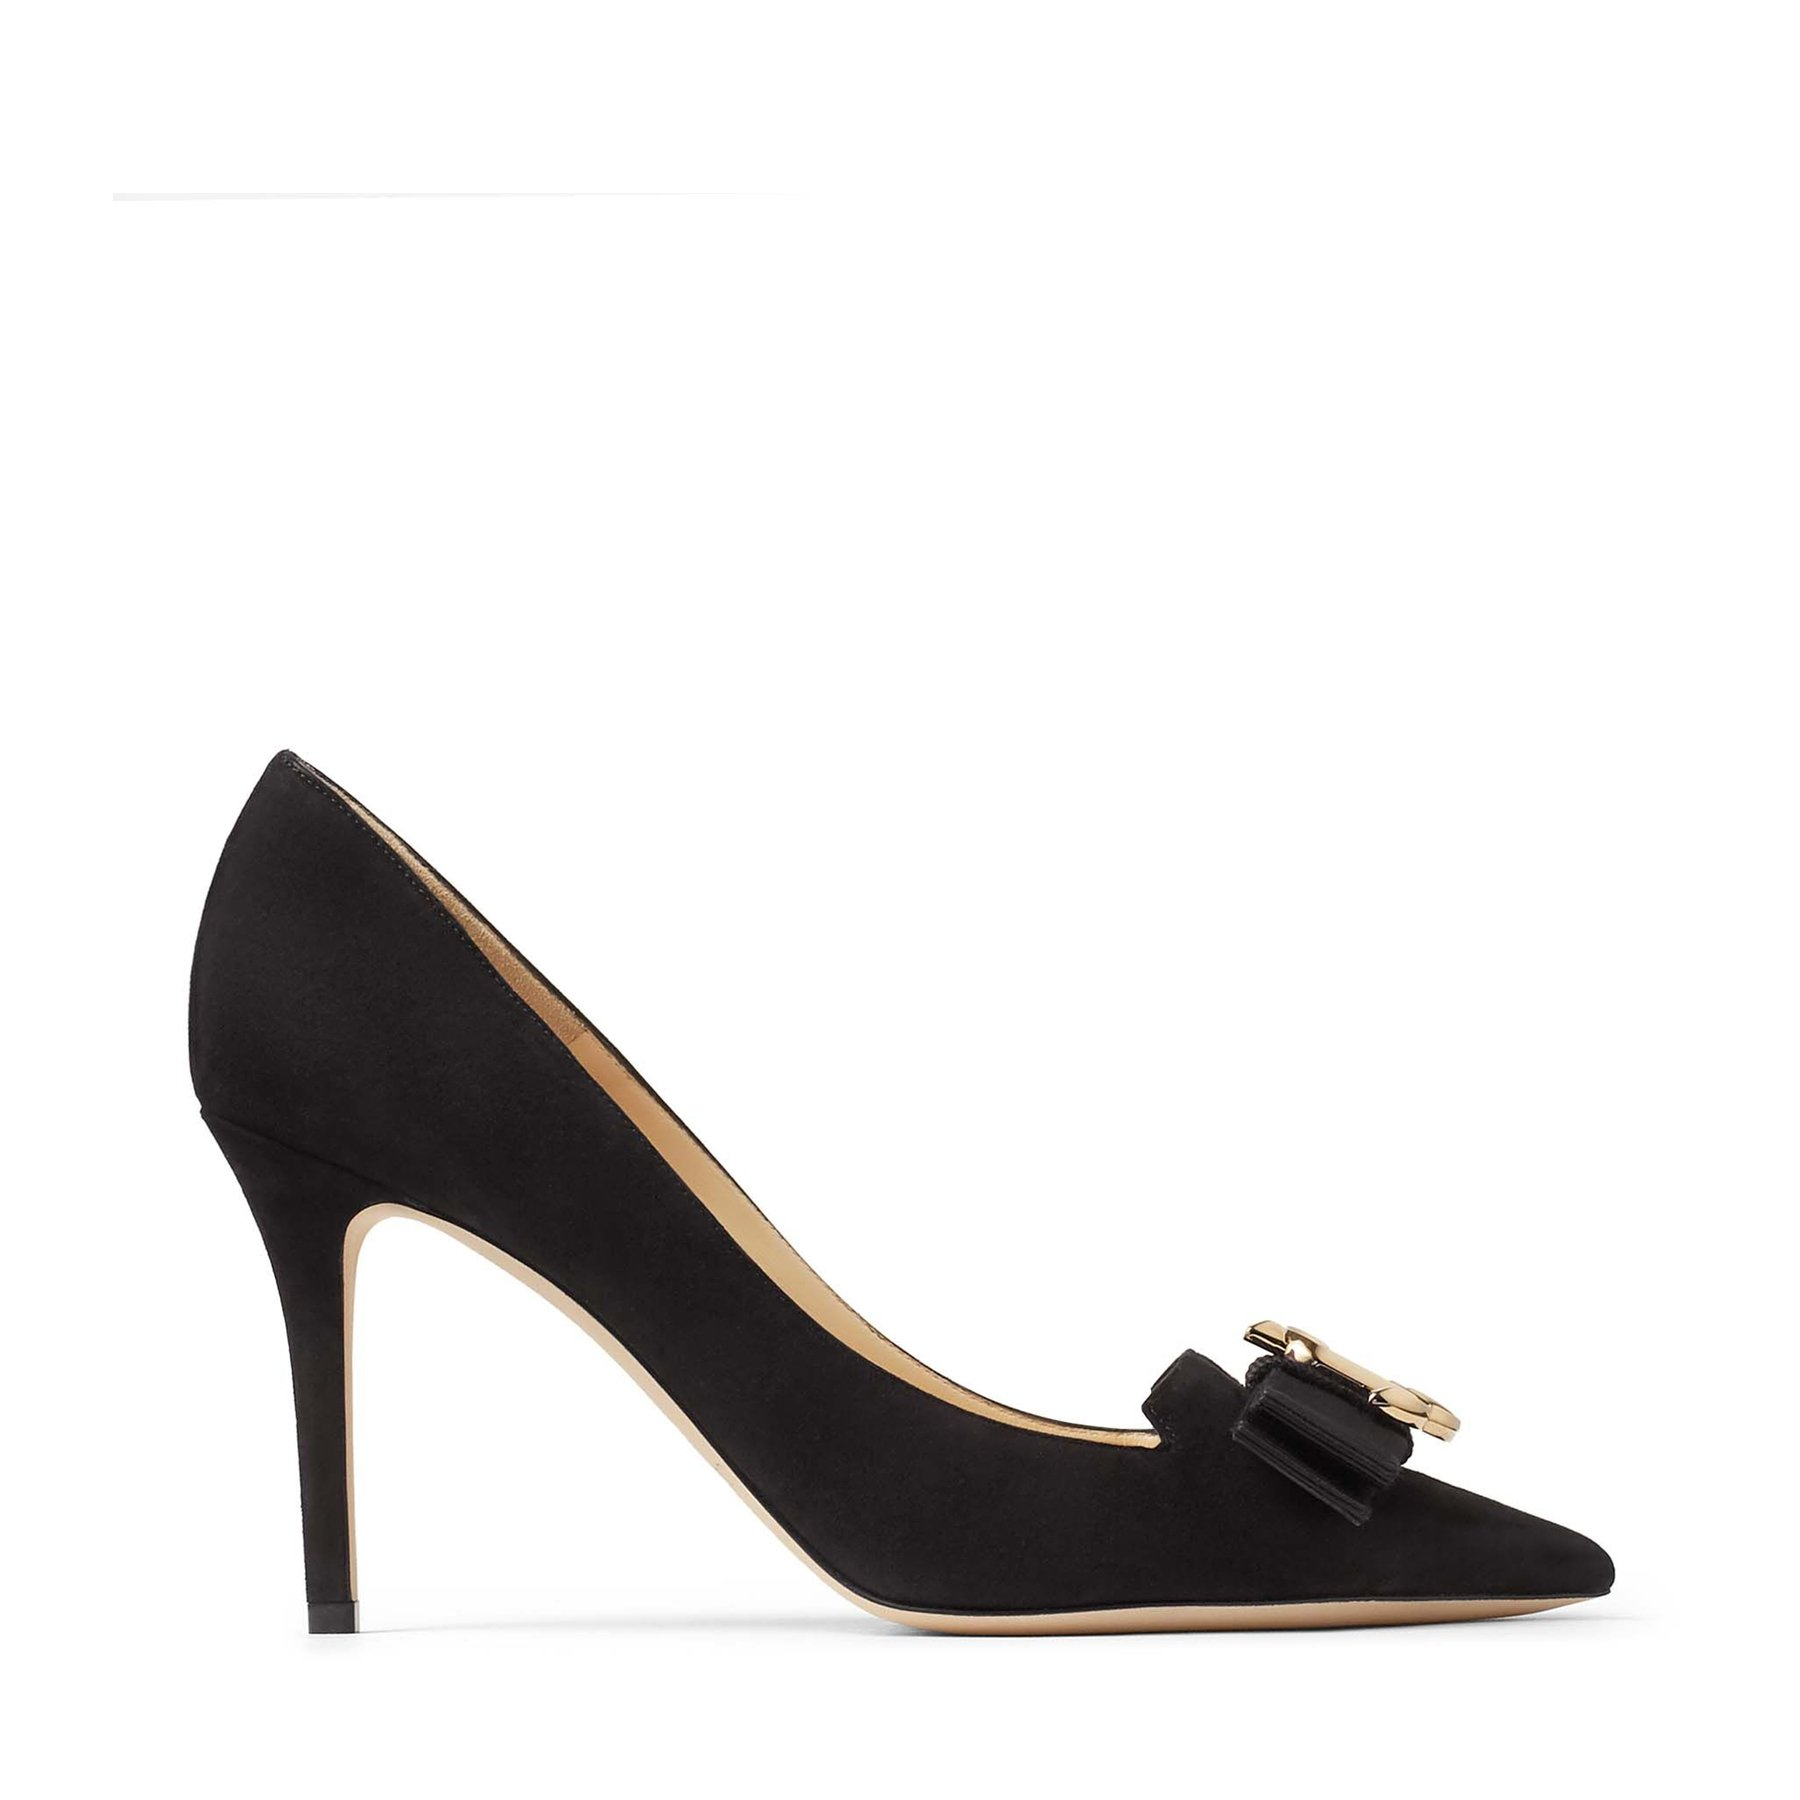 7afe6217 Shoes | Womens Designer Shoes Online | JIMMY CHOO